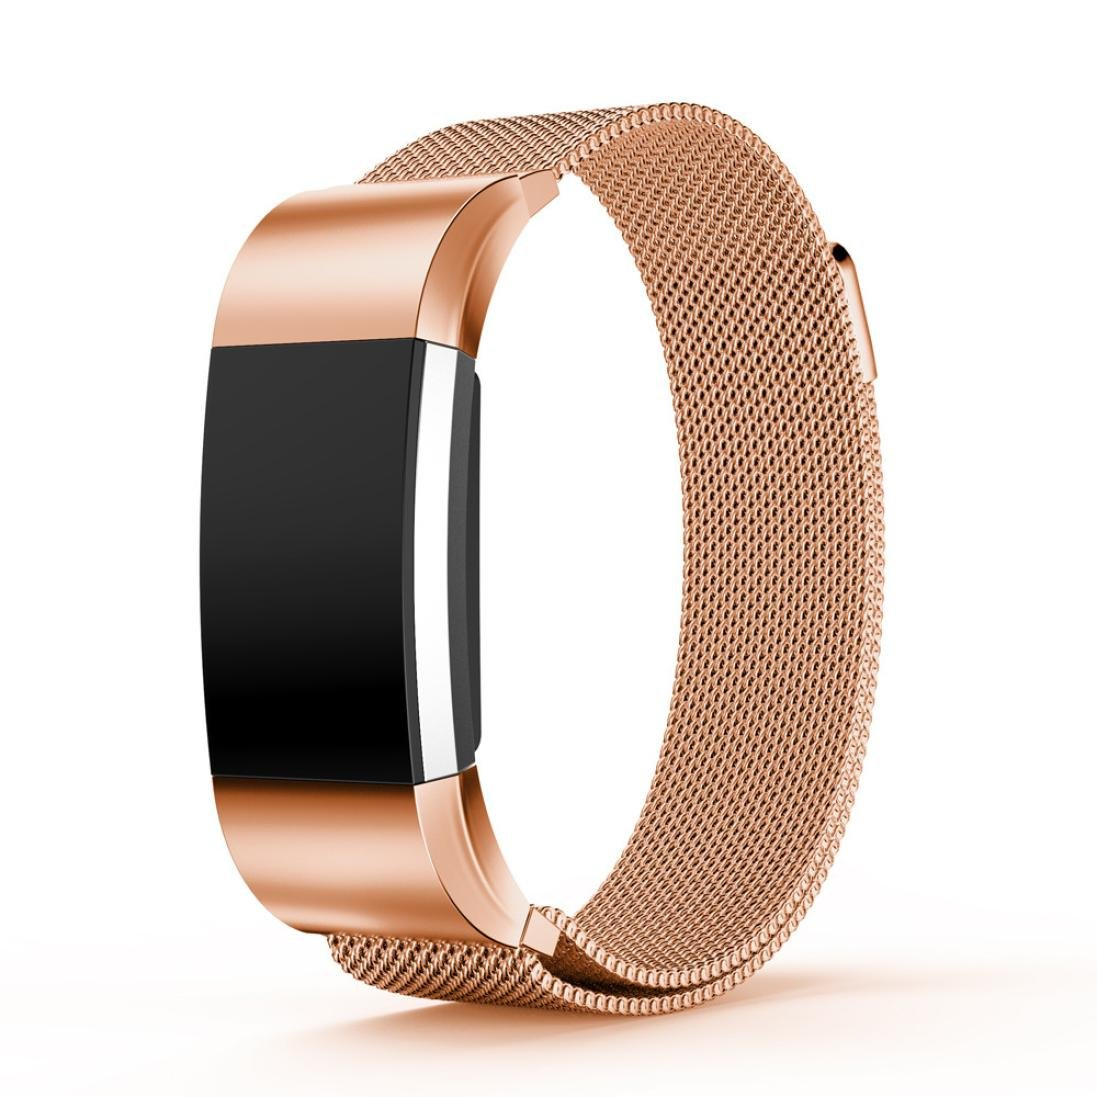 For Fitbit Charge 2バンド、for Fitbit Charge 2アクセサリー、gotd Small Milaneseステンレススチール時計バンドストラップブレスレットfor Fitbit Charge 2 B01M4FHE32 ローズゴールド